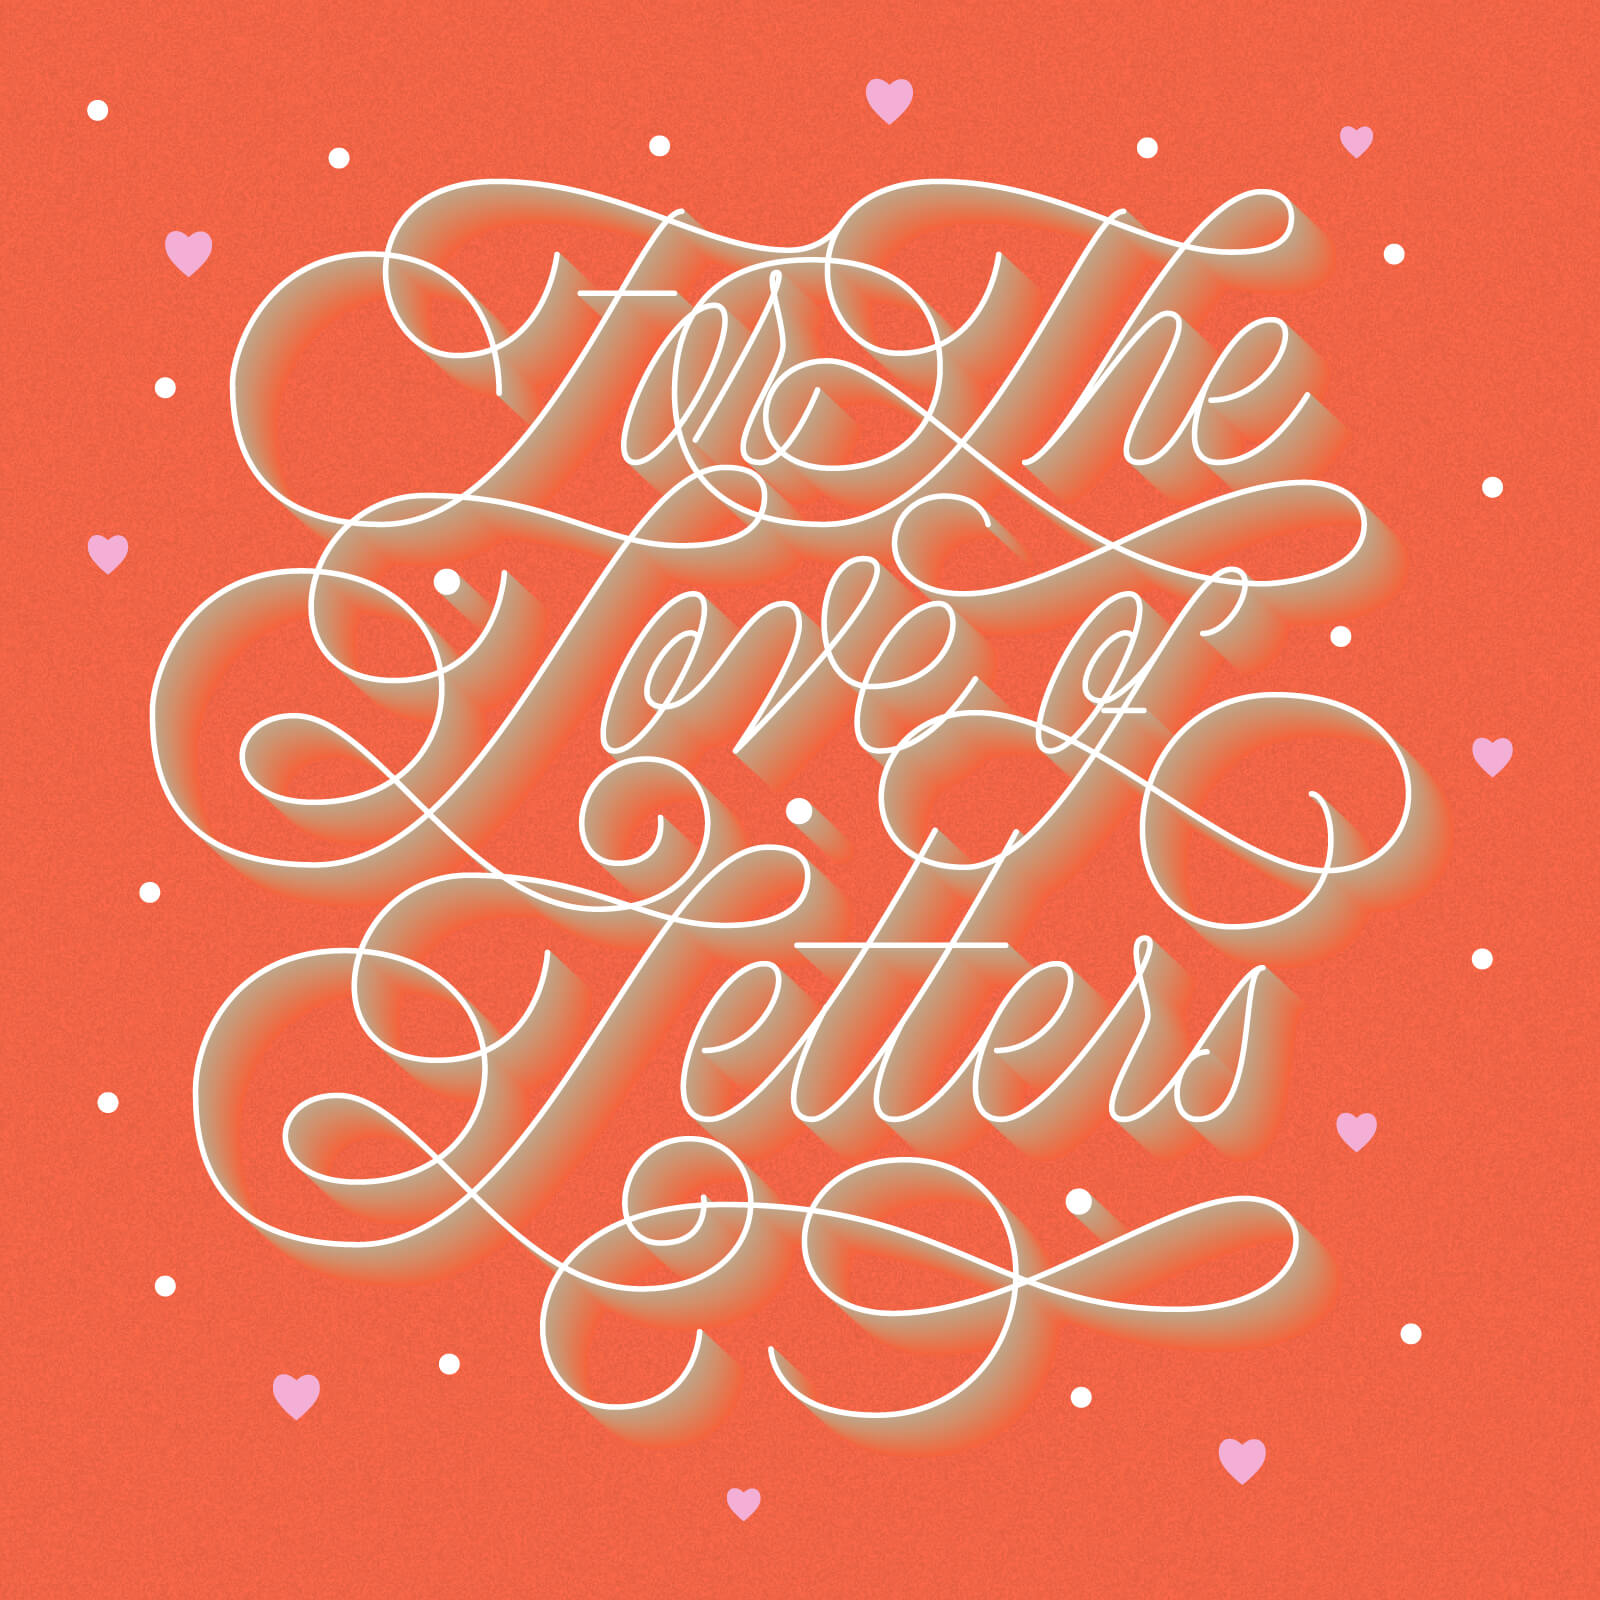 For the Love of Letters - Alanna Flowers